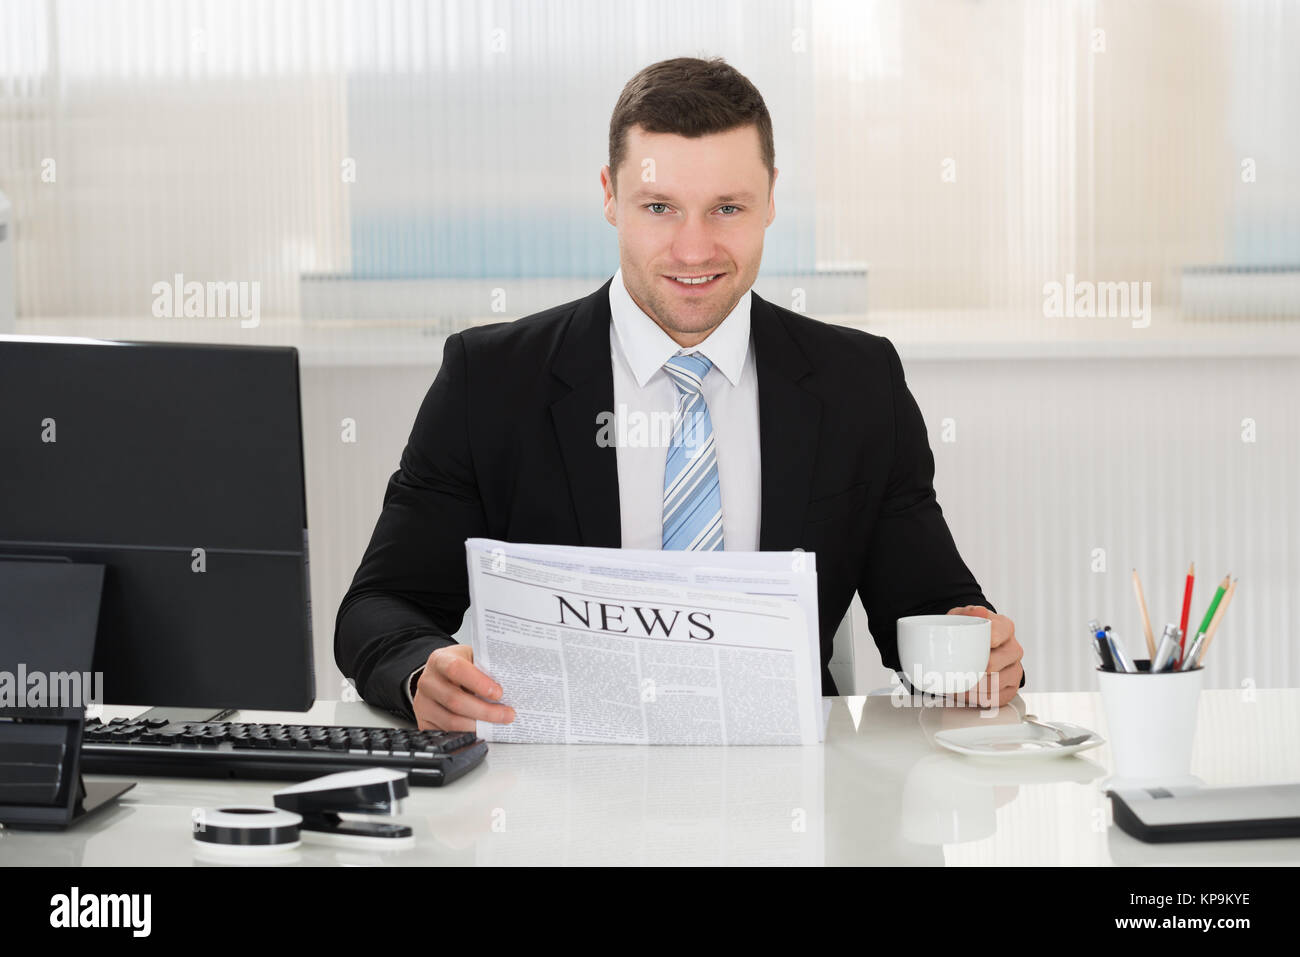 Businessman Holding Newspaper And Coffee Cup At Desk - Stock Image